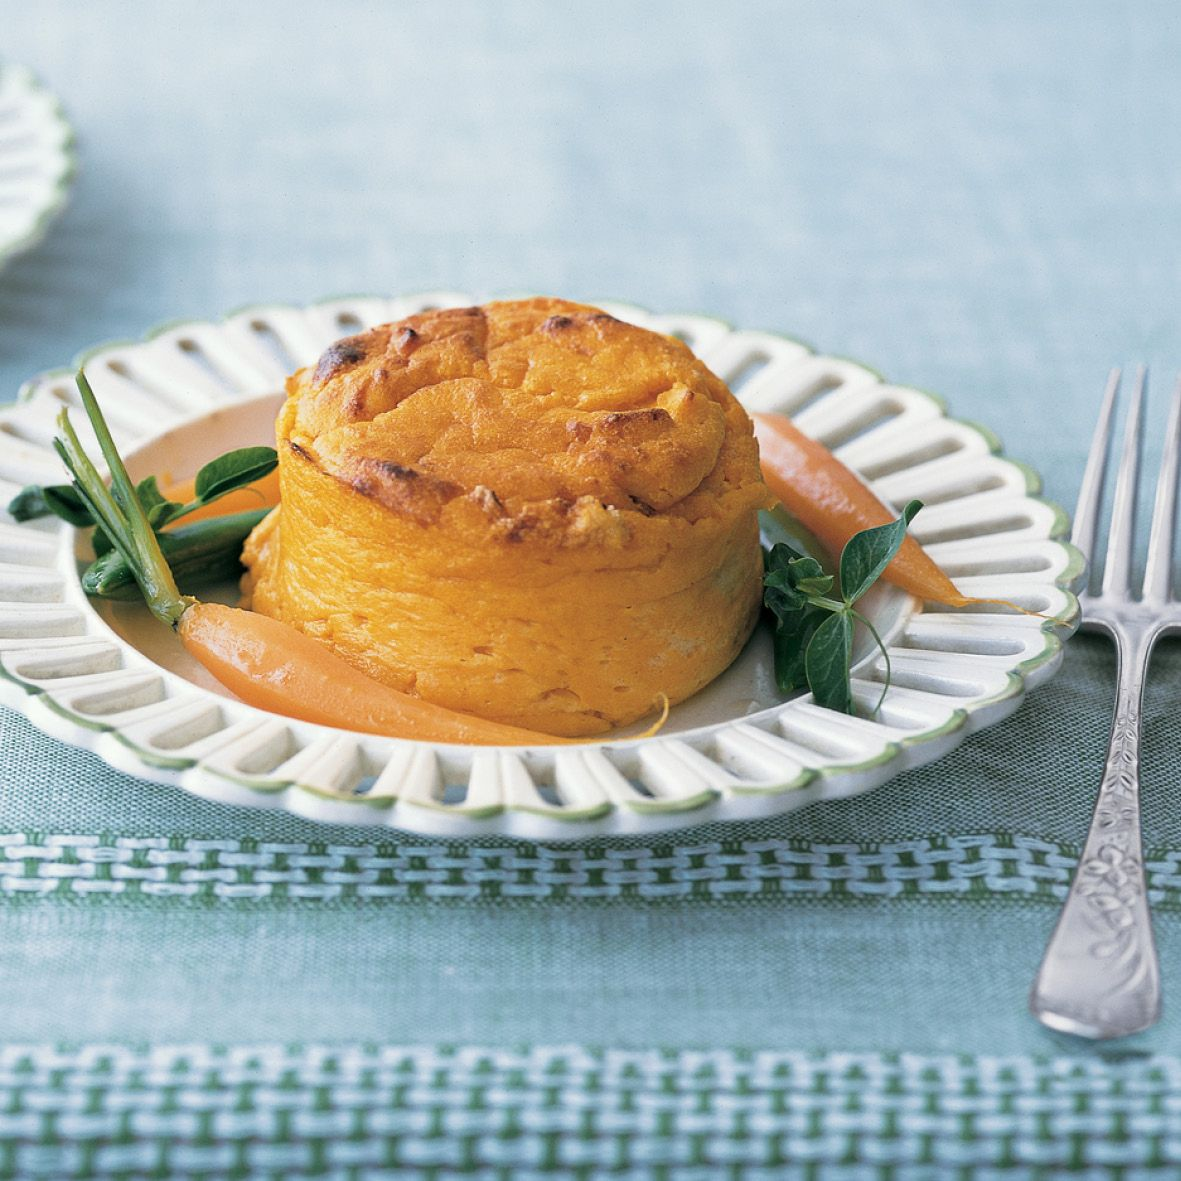 Carrot_pudding_souffle_with_buttered_vegetables.jpg